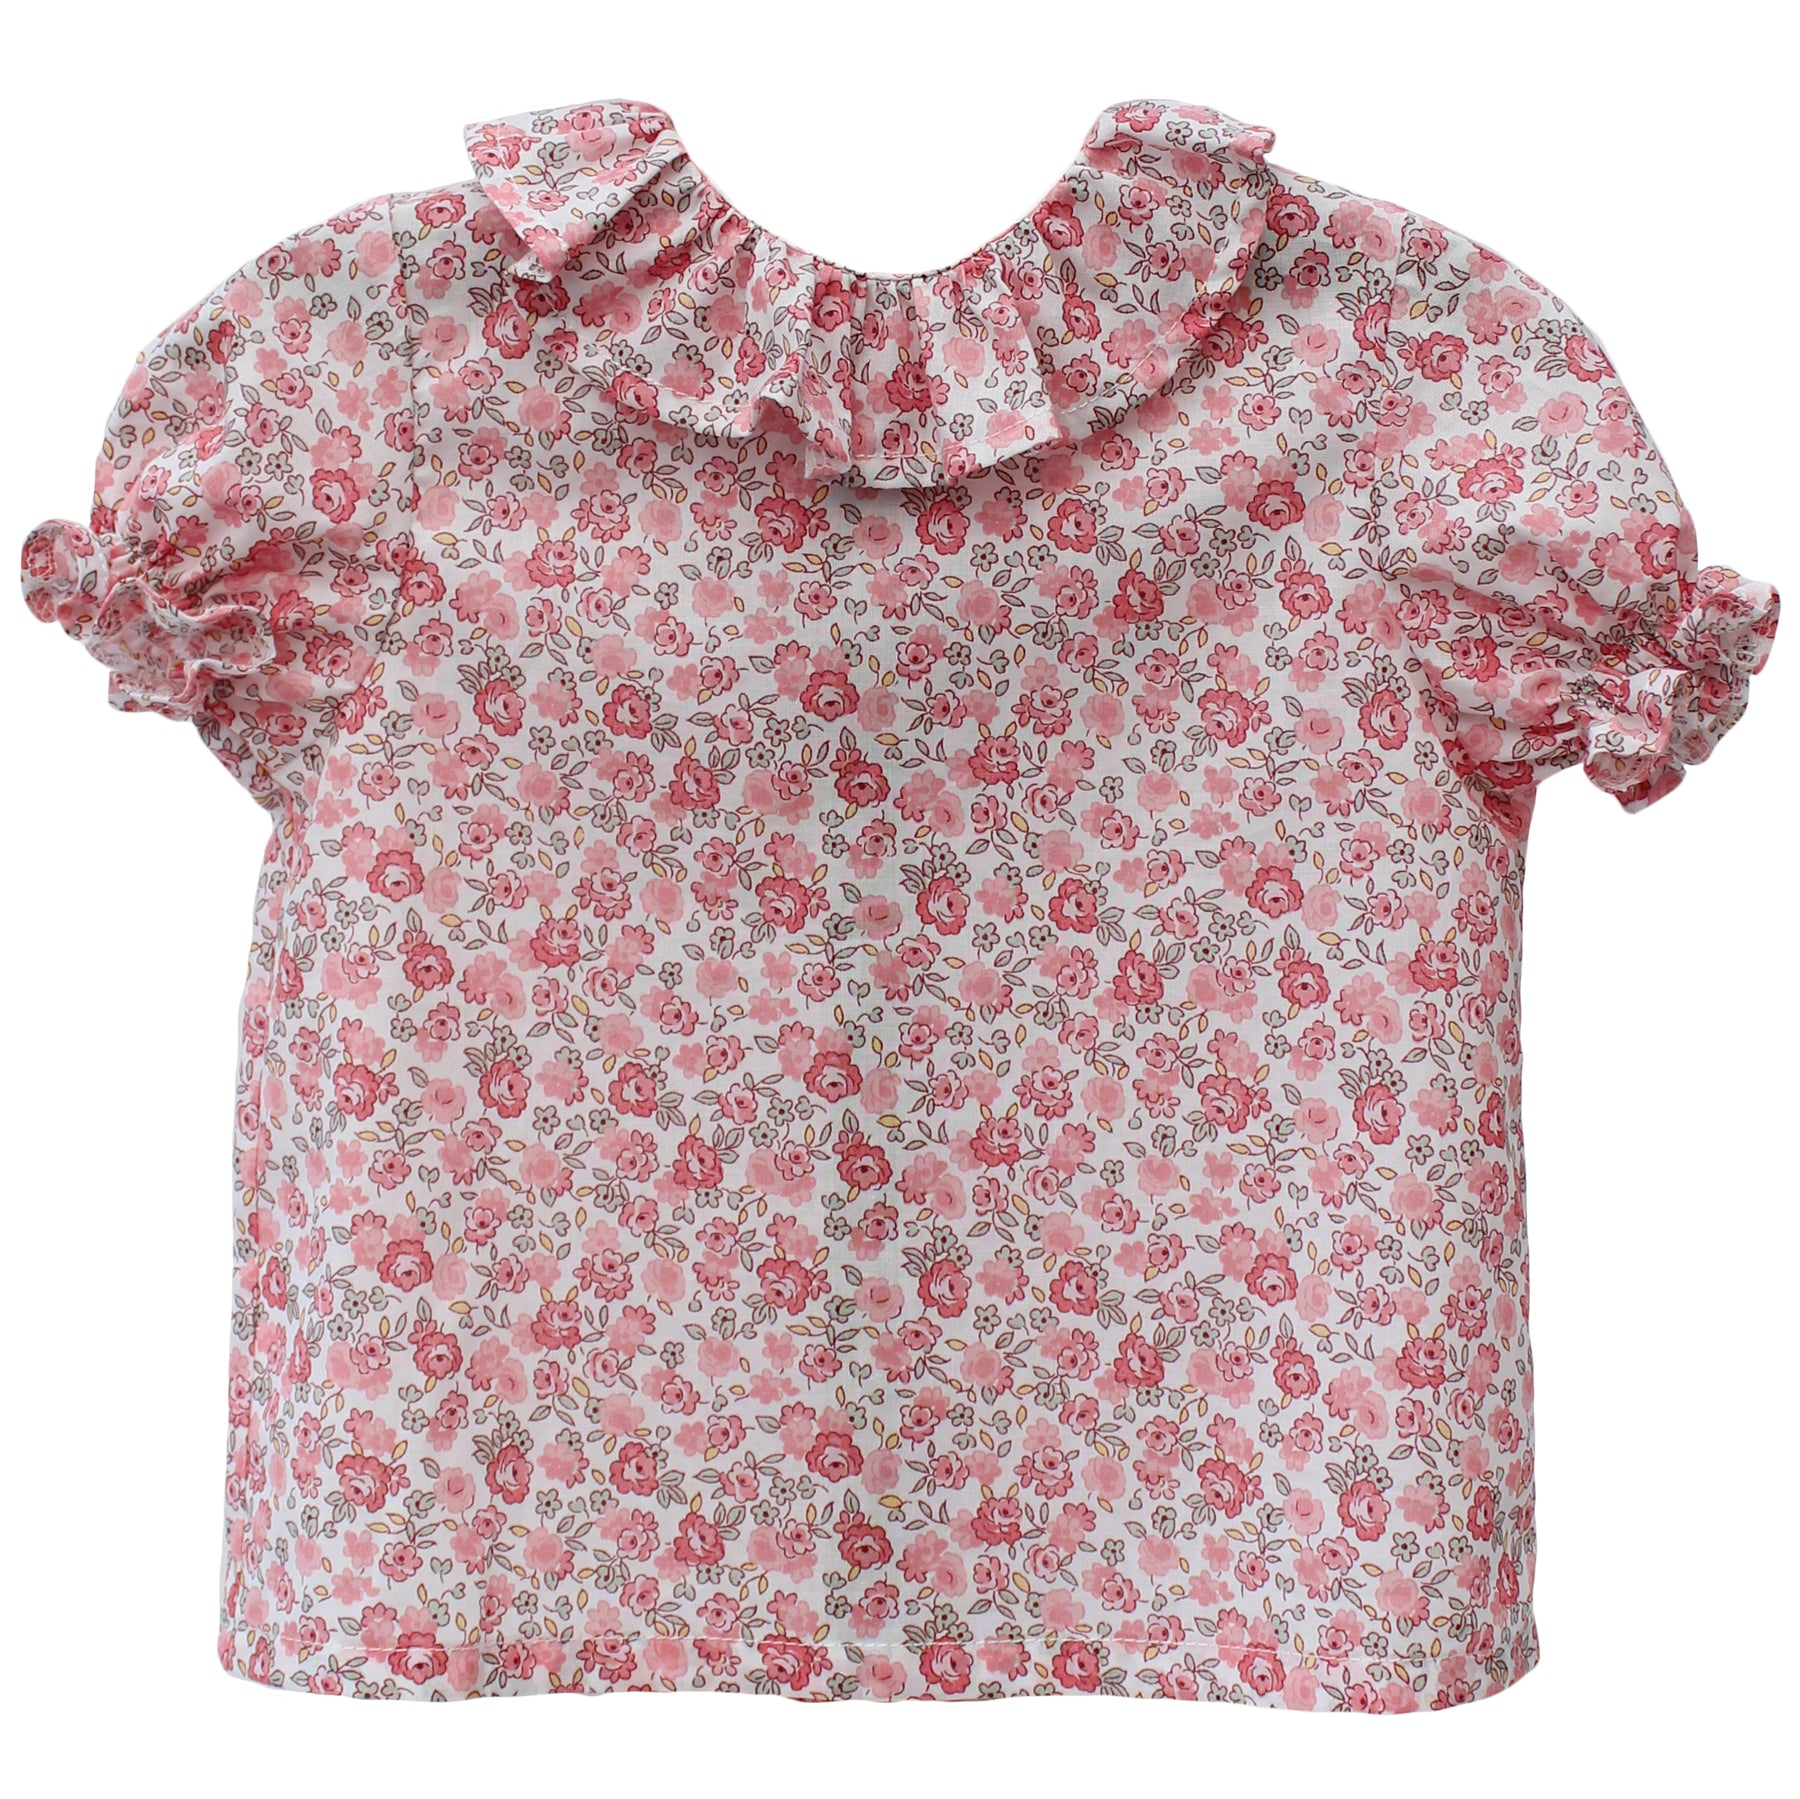 floral print spanish baby blouse with frill collar